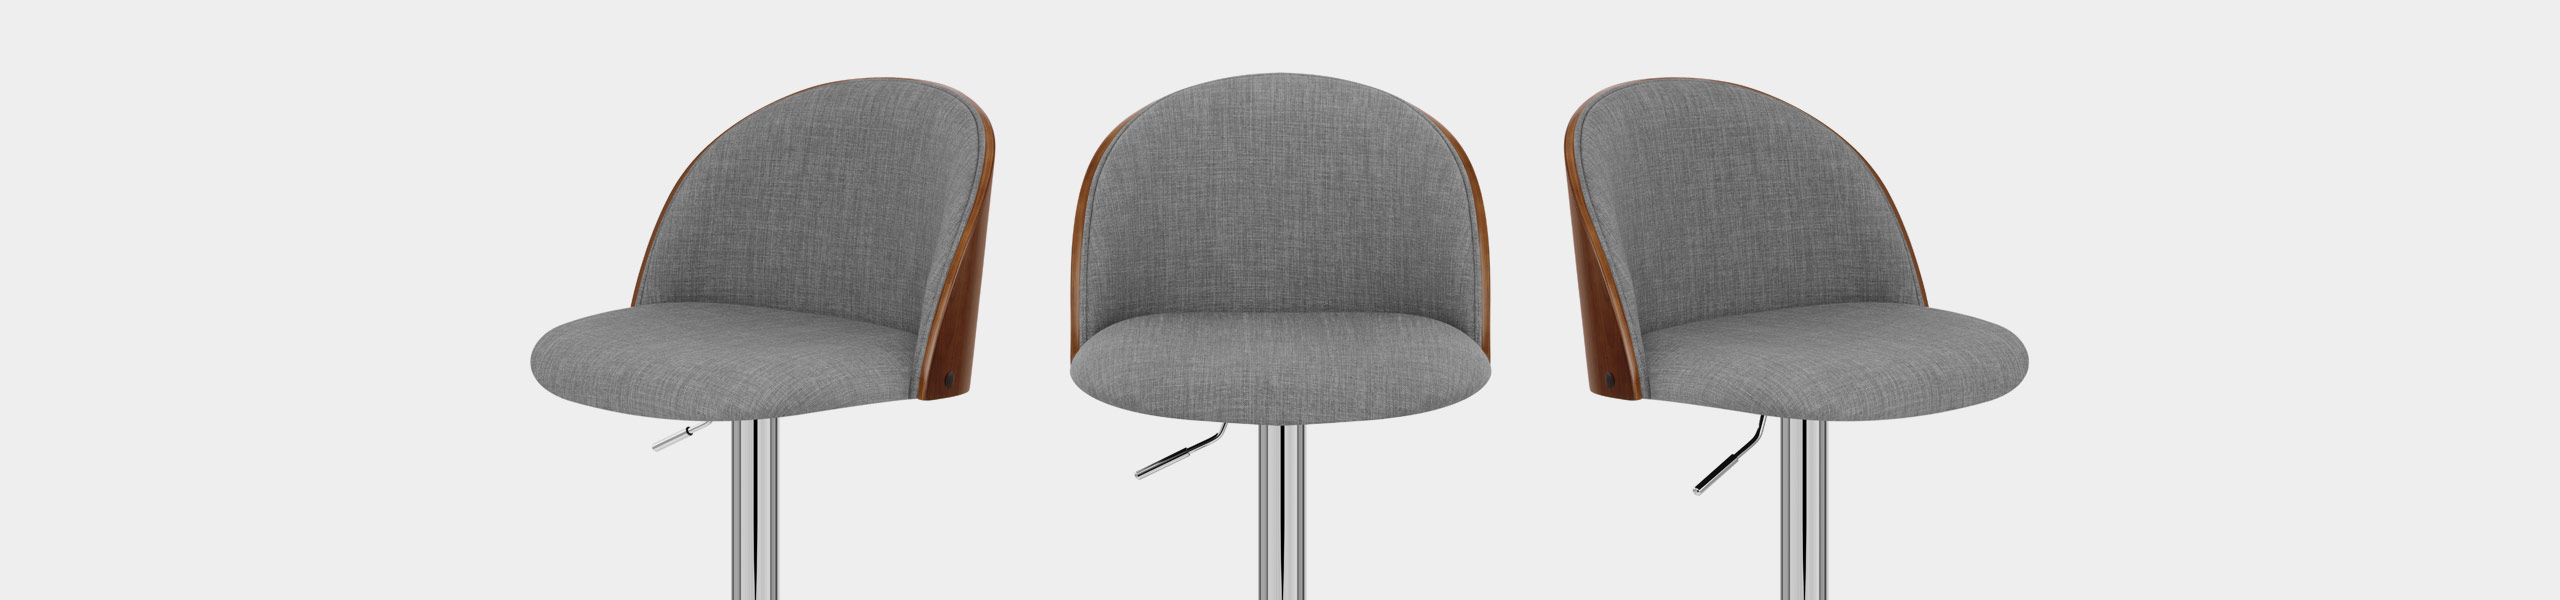 Focus Walnut Stool Grey Fabric Video Banner